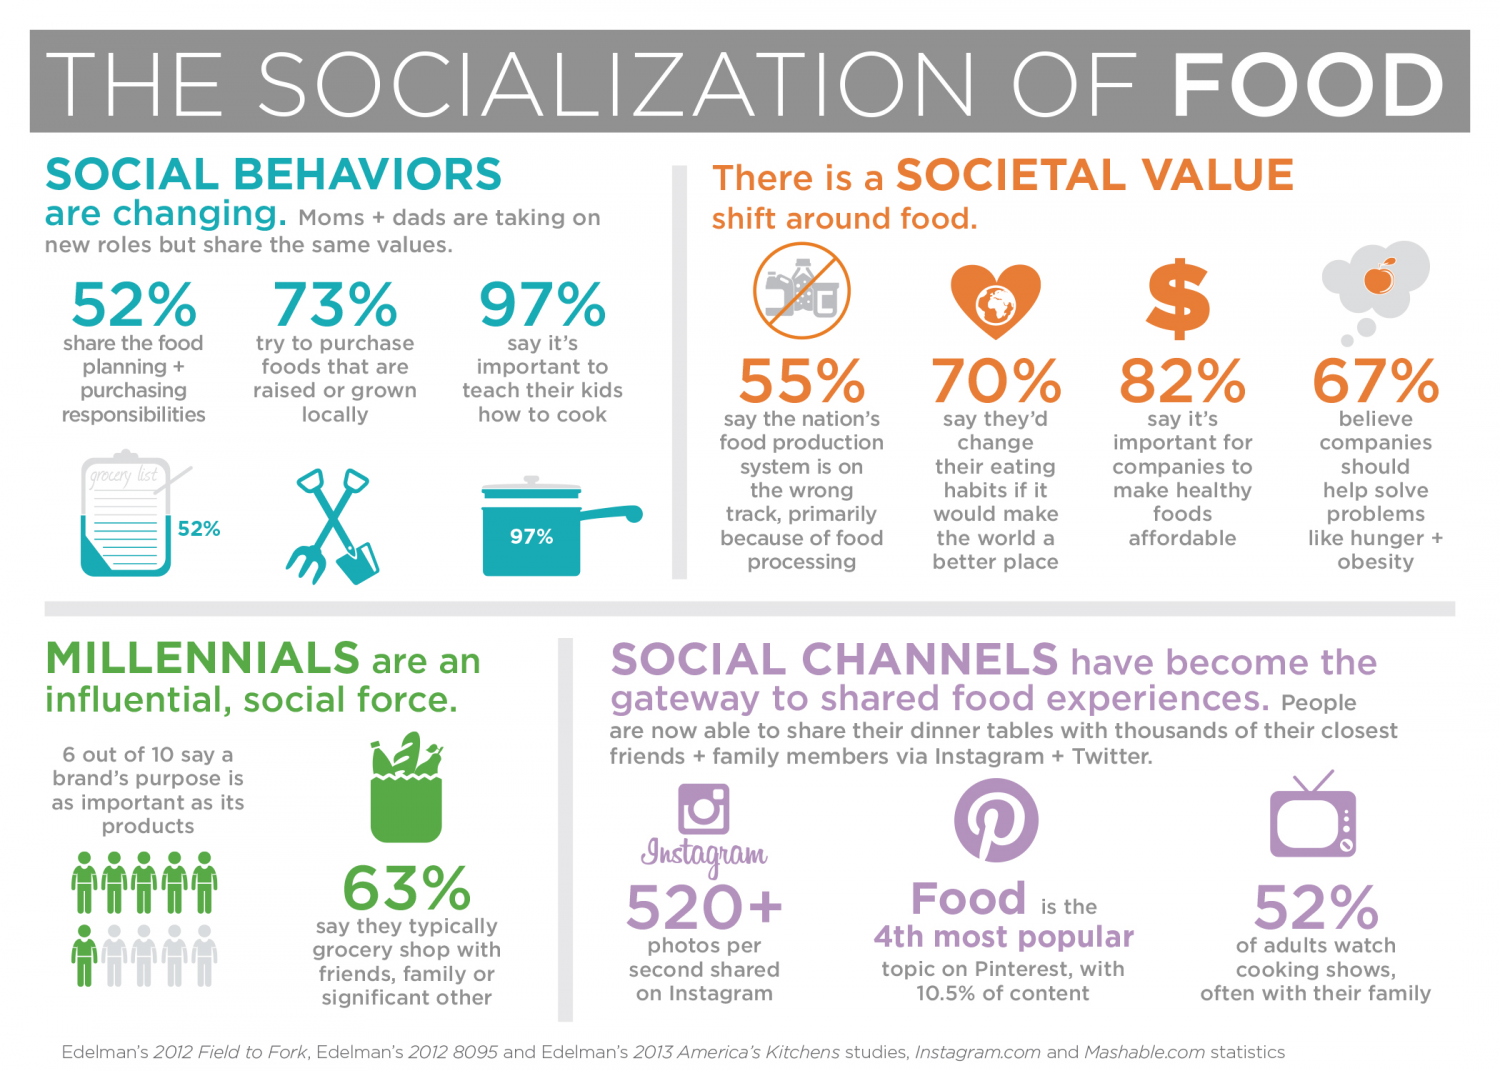 The Socialization of Food Infographic